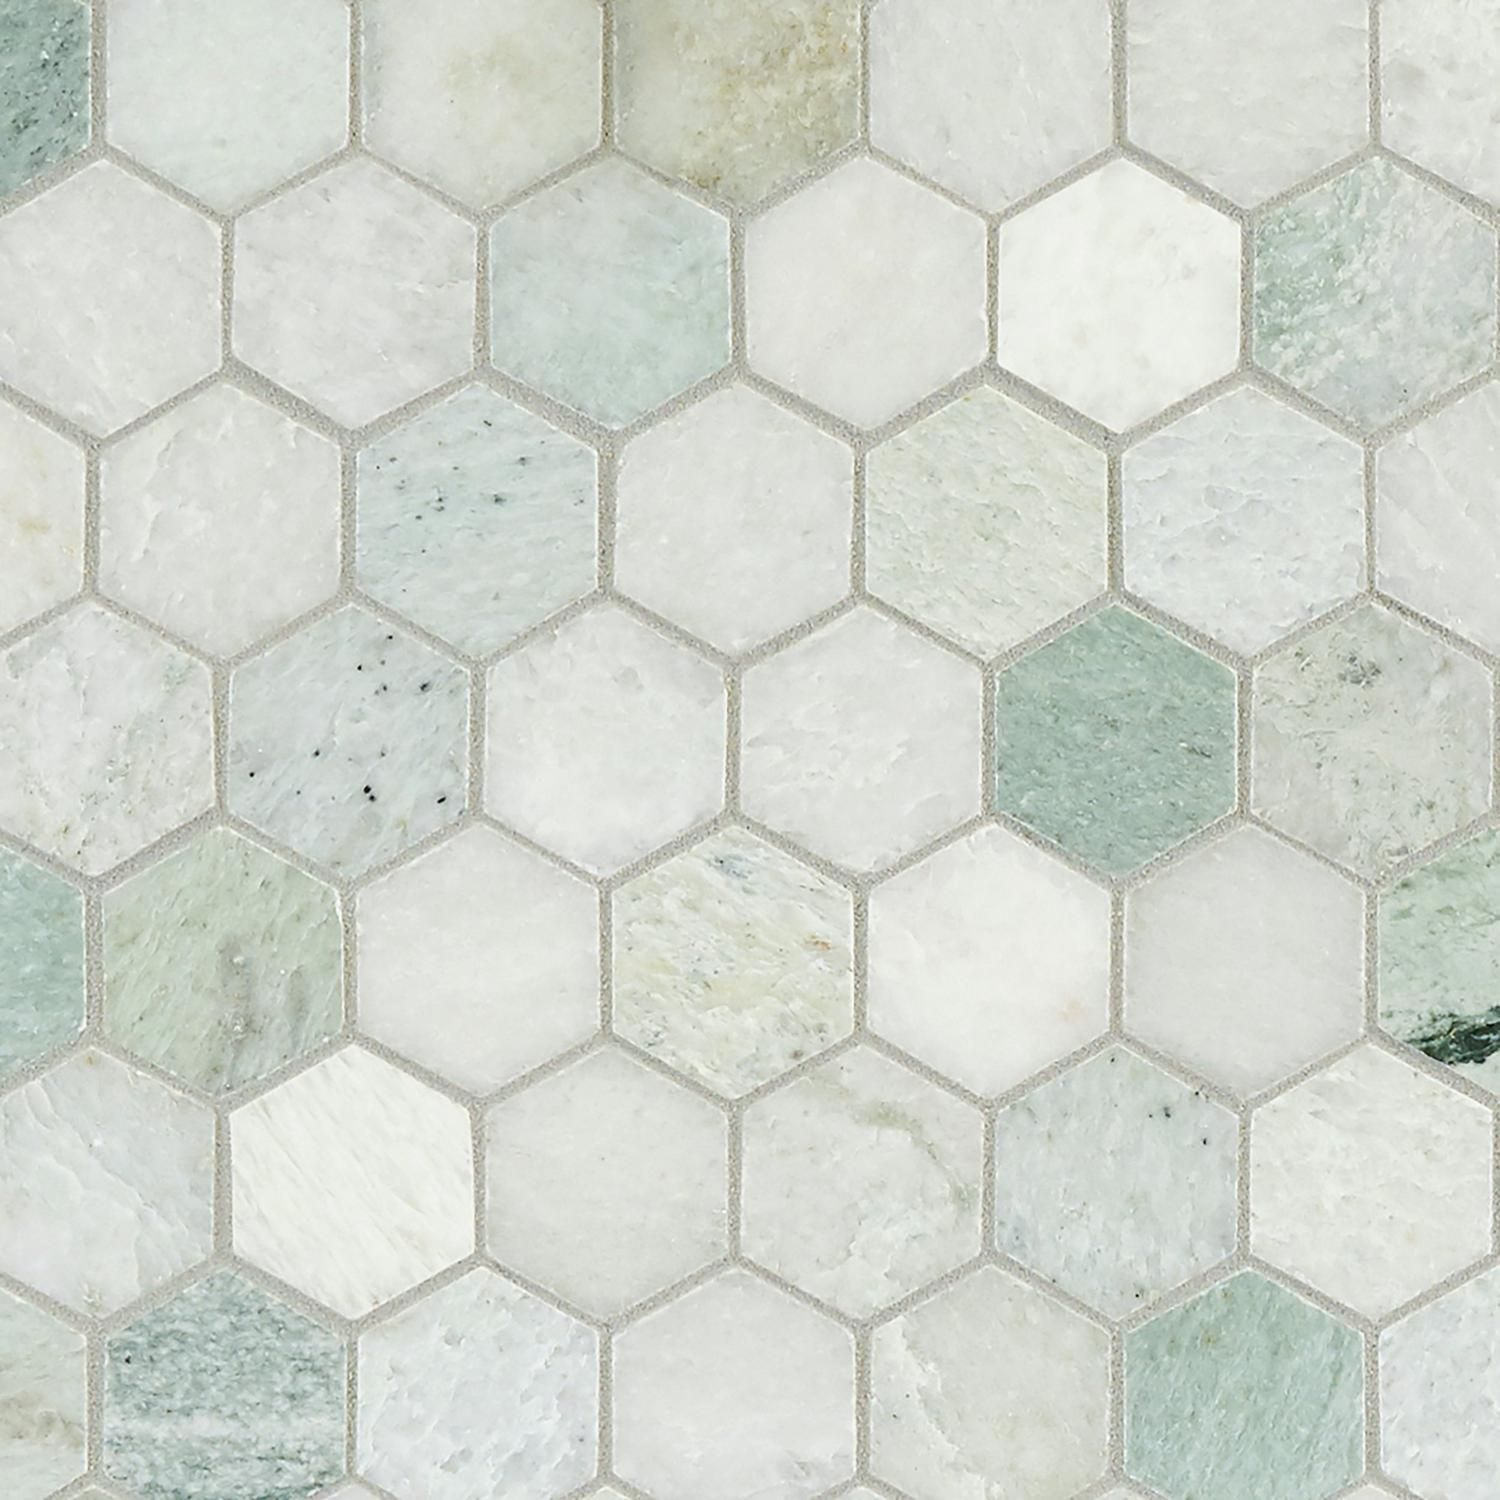 Caribbean green hexagon polished marble mosaic marble mosaic caribbean green hexagon polished marble mosaic 12 x 12 100052604 dailygadgetfo Choice Image